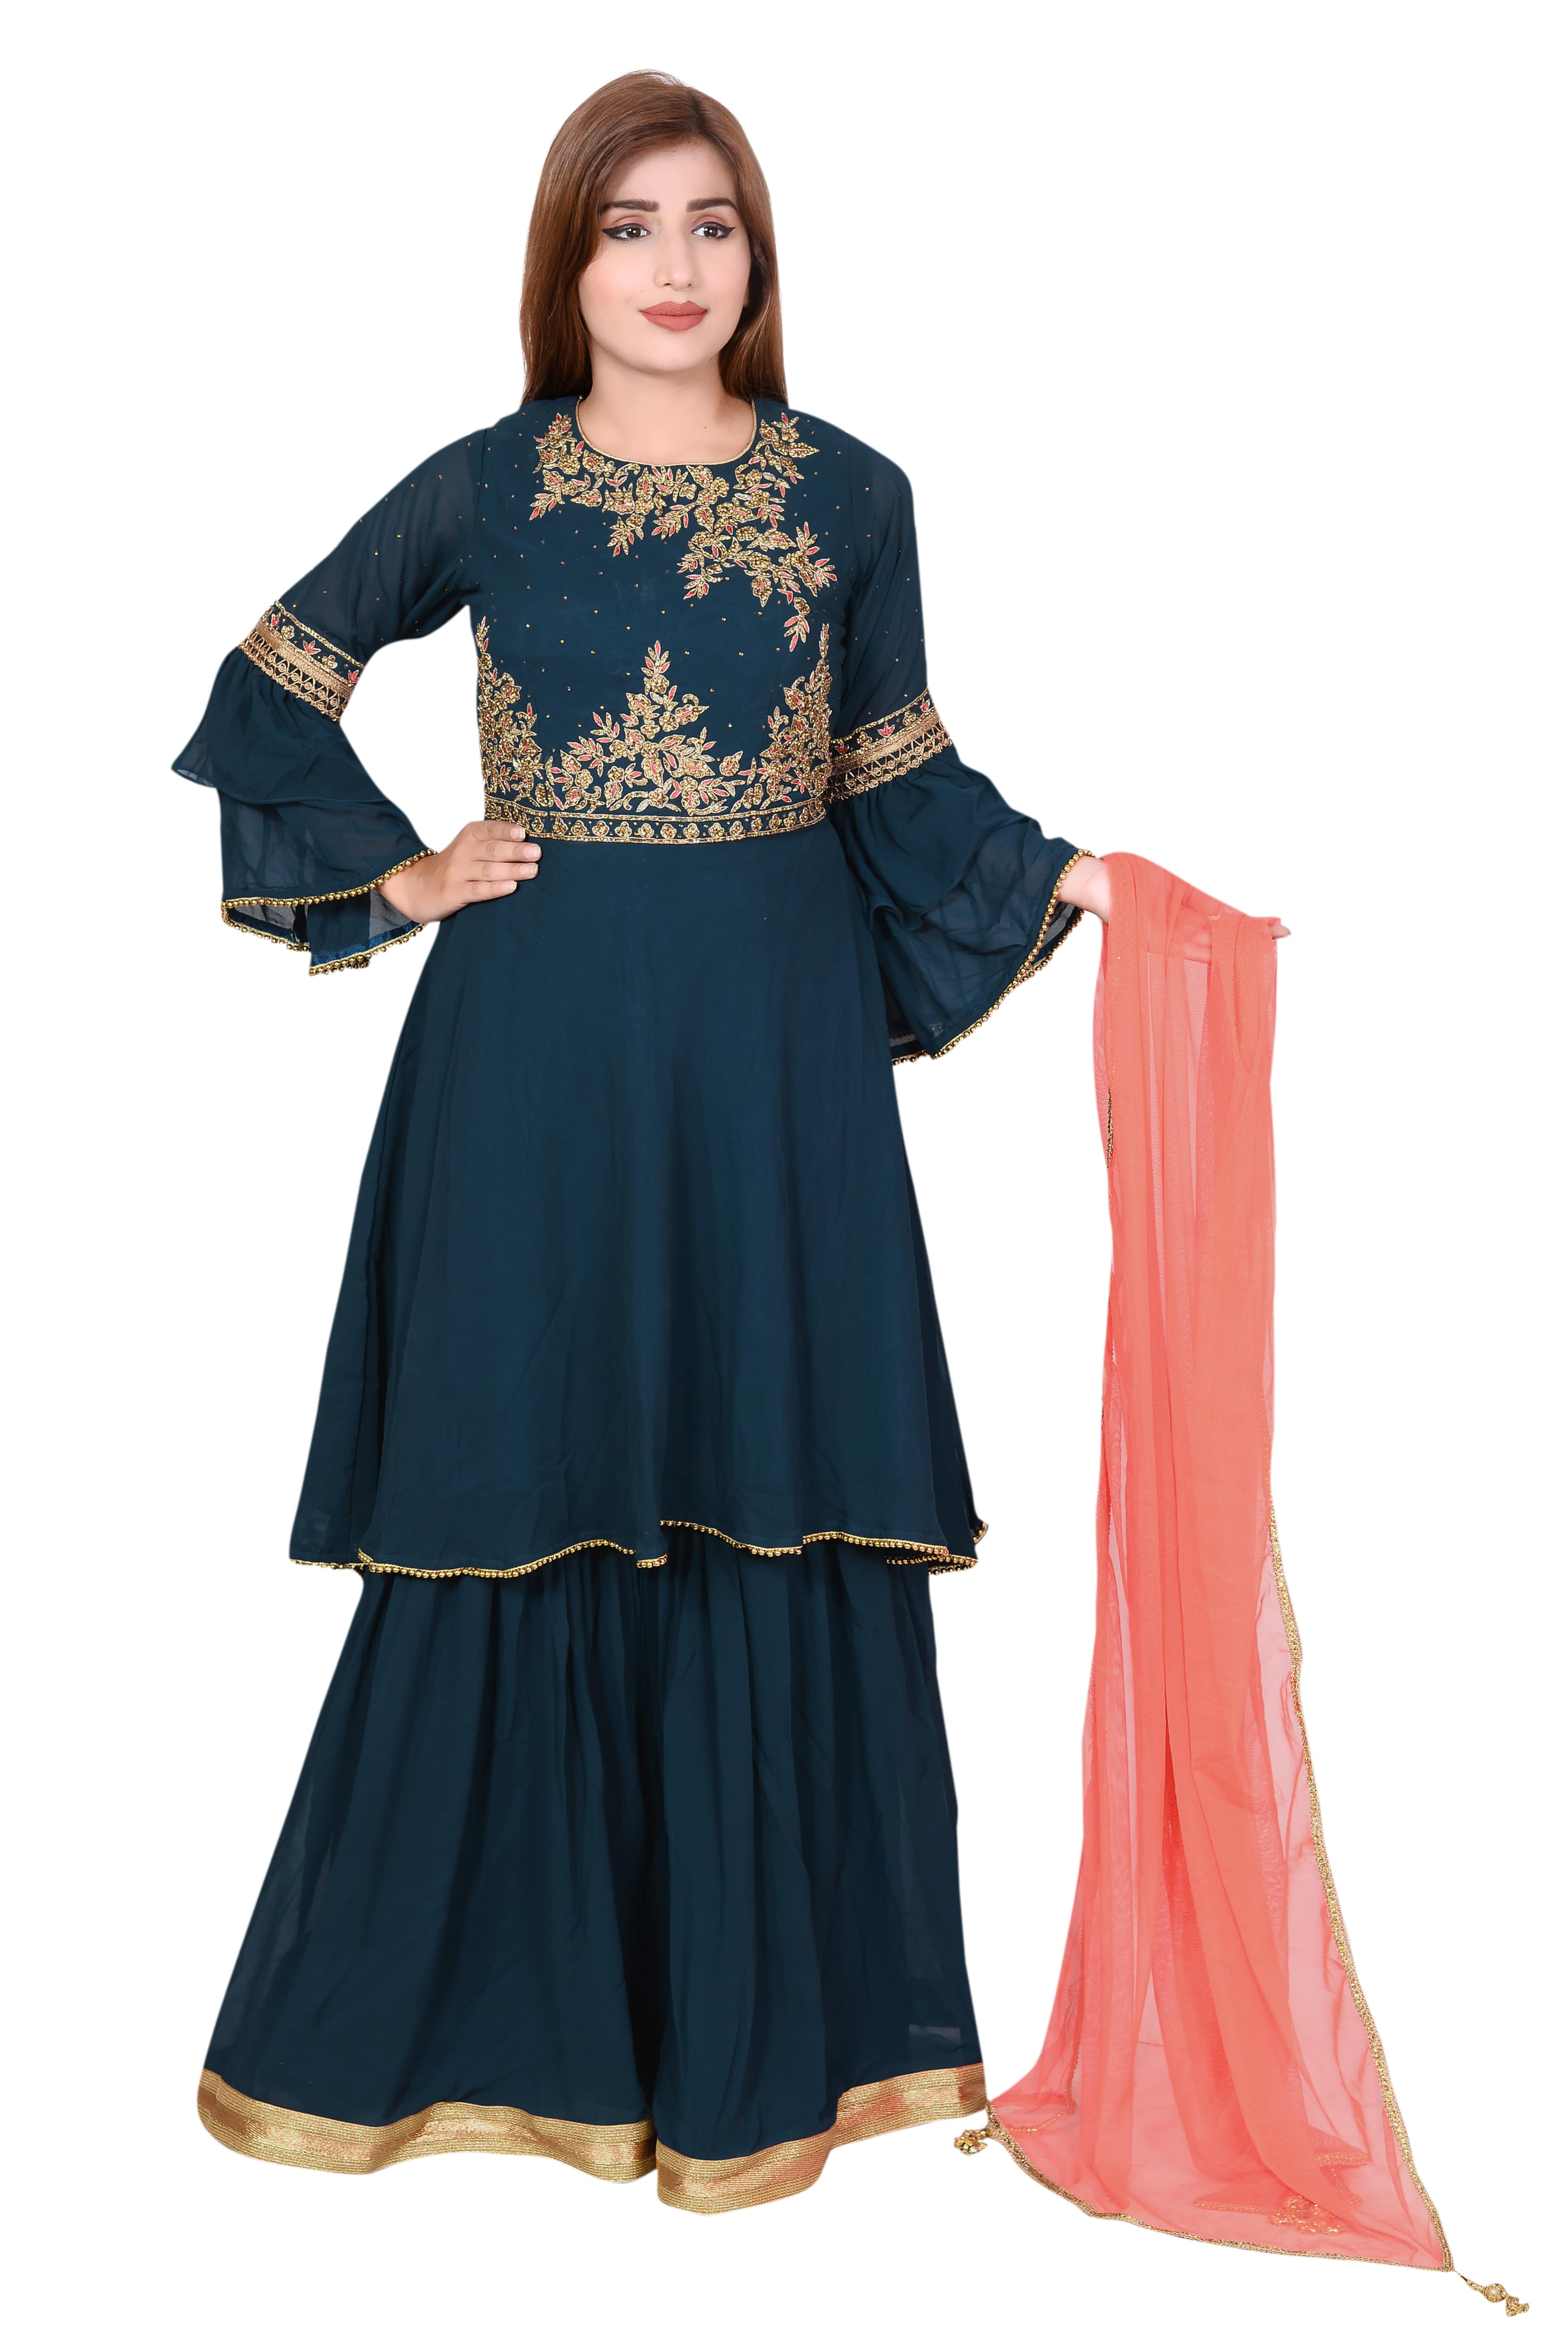 Ladies Ethnic Wear In Bhubaneswar